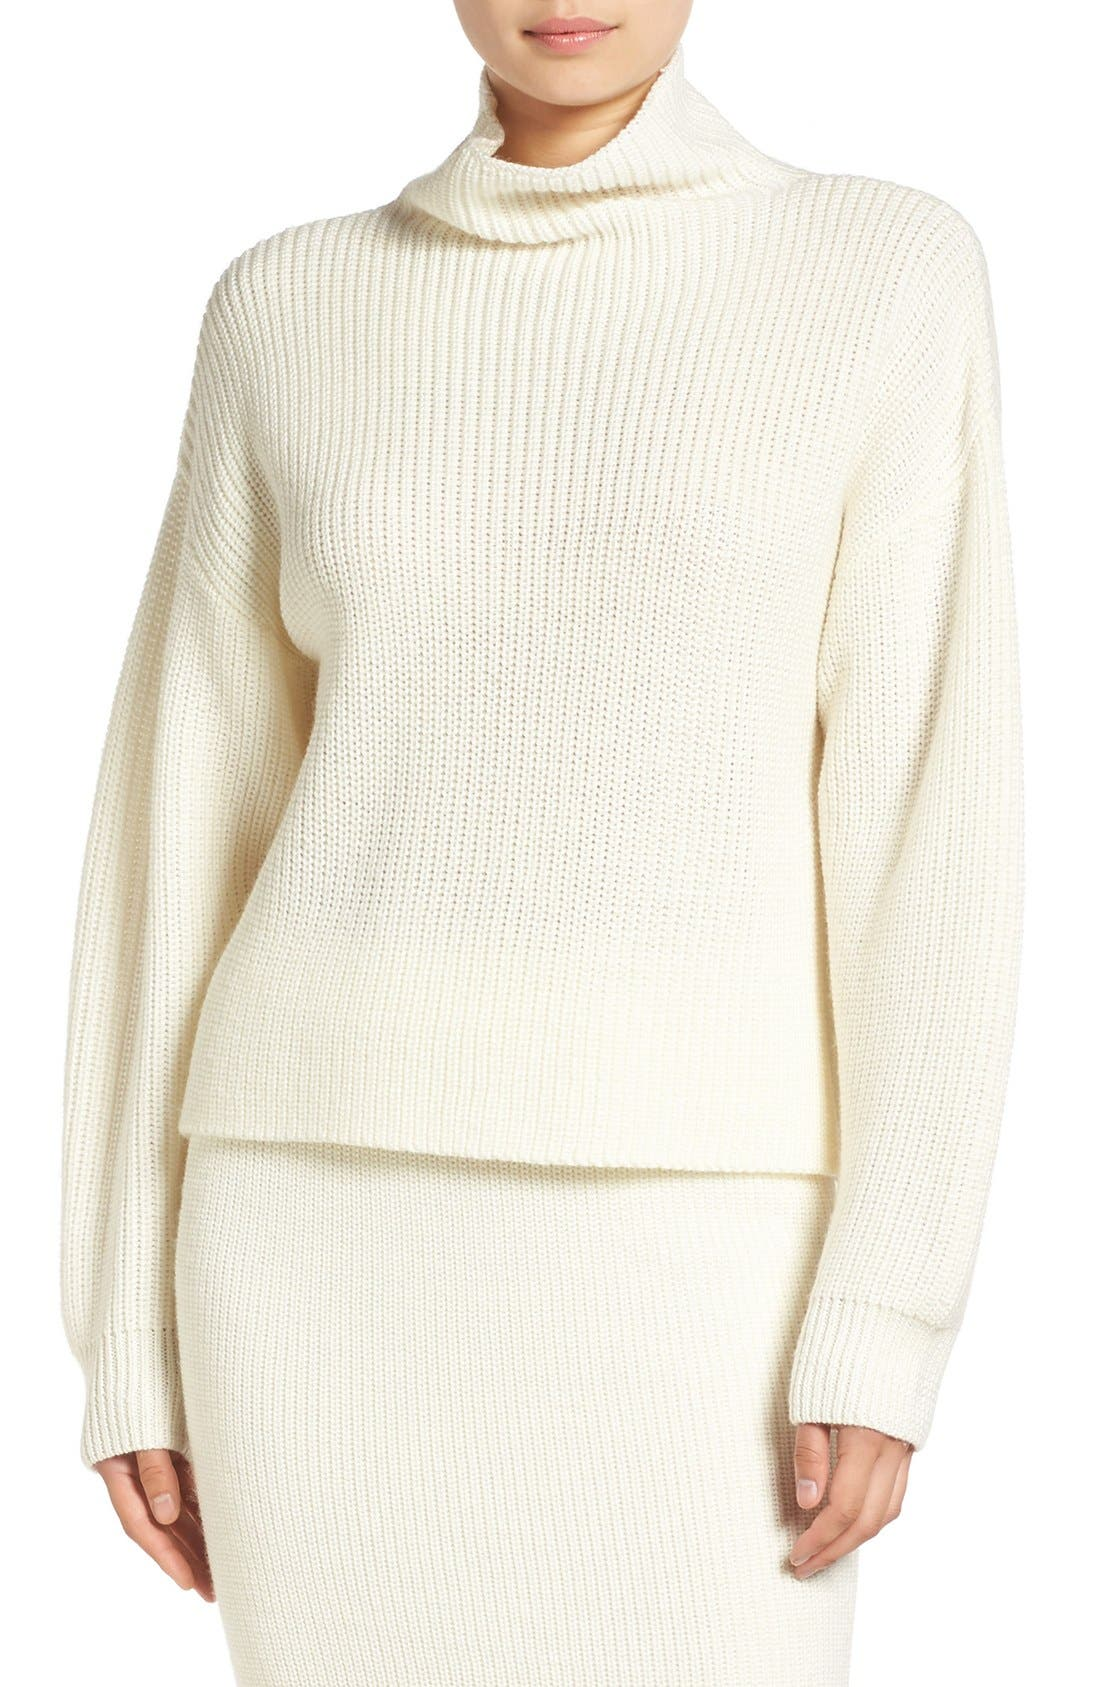 by Lauren Conrad 'Vancouver' Funnel Neck Sweater,                             Main thumbnail 1, color,                             100